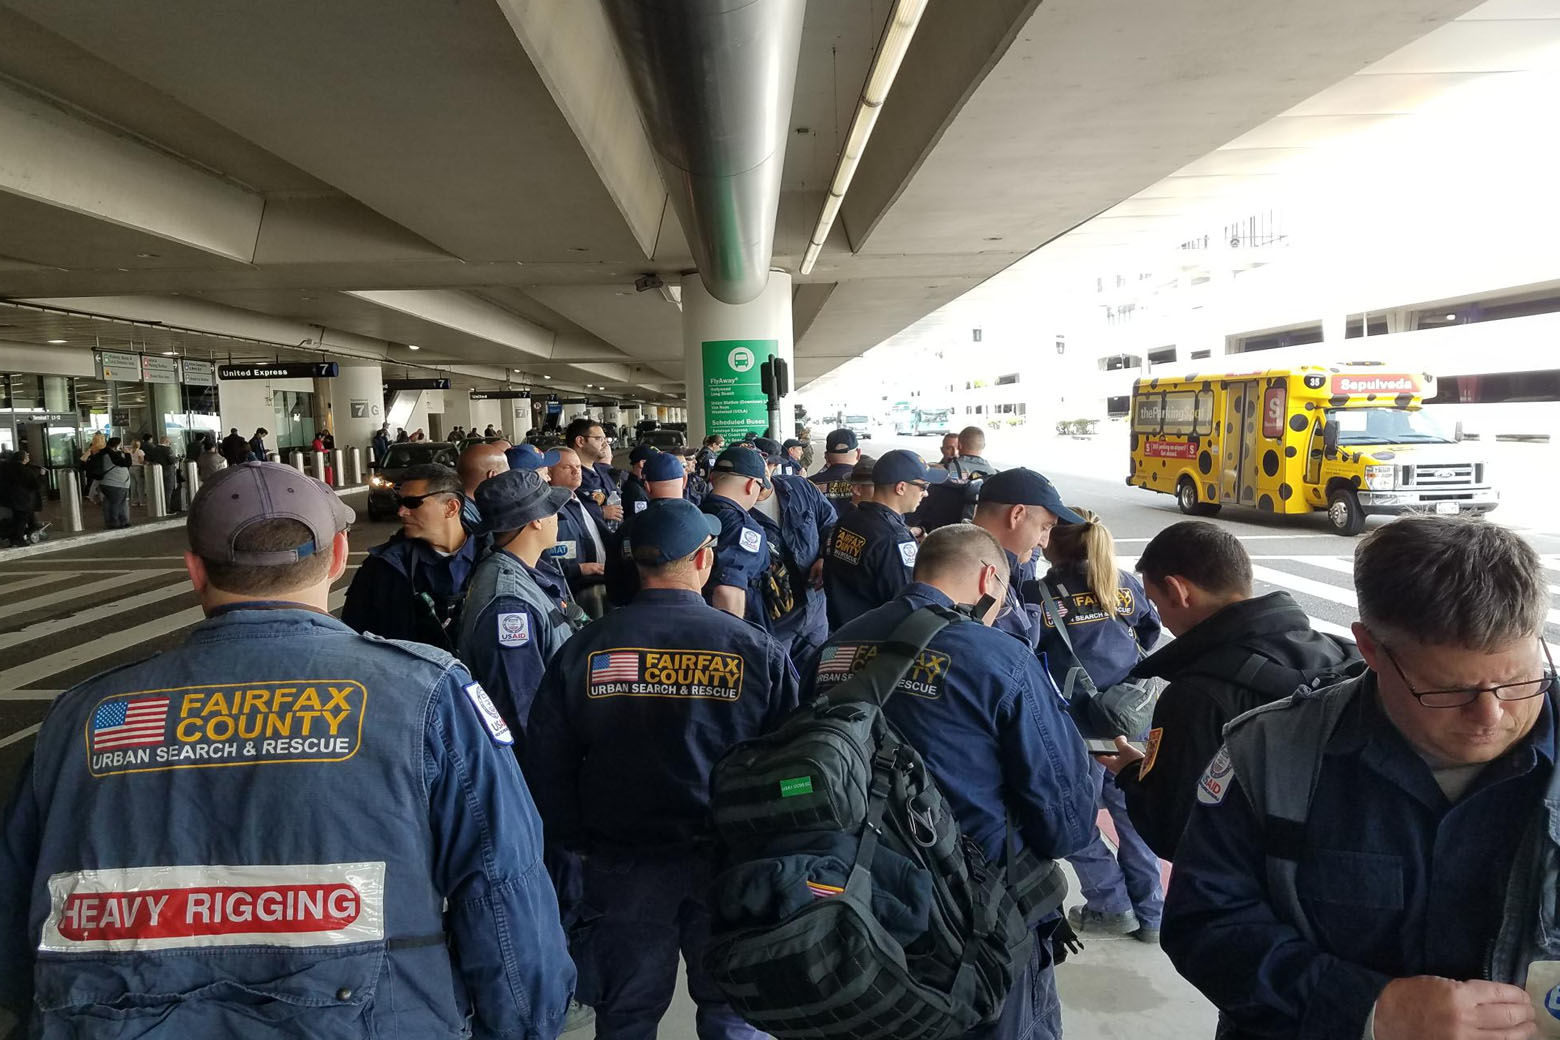 Members of Virginia Task Force 1 arrive in Los Angeles for the training exercise. (Courtesy Virginia Task Force 1)